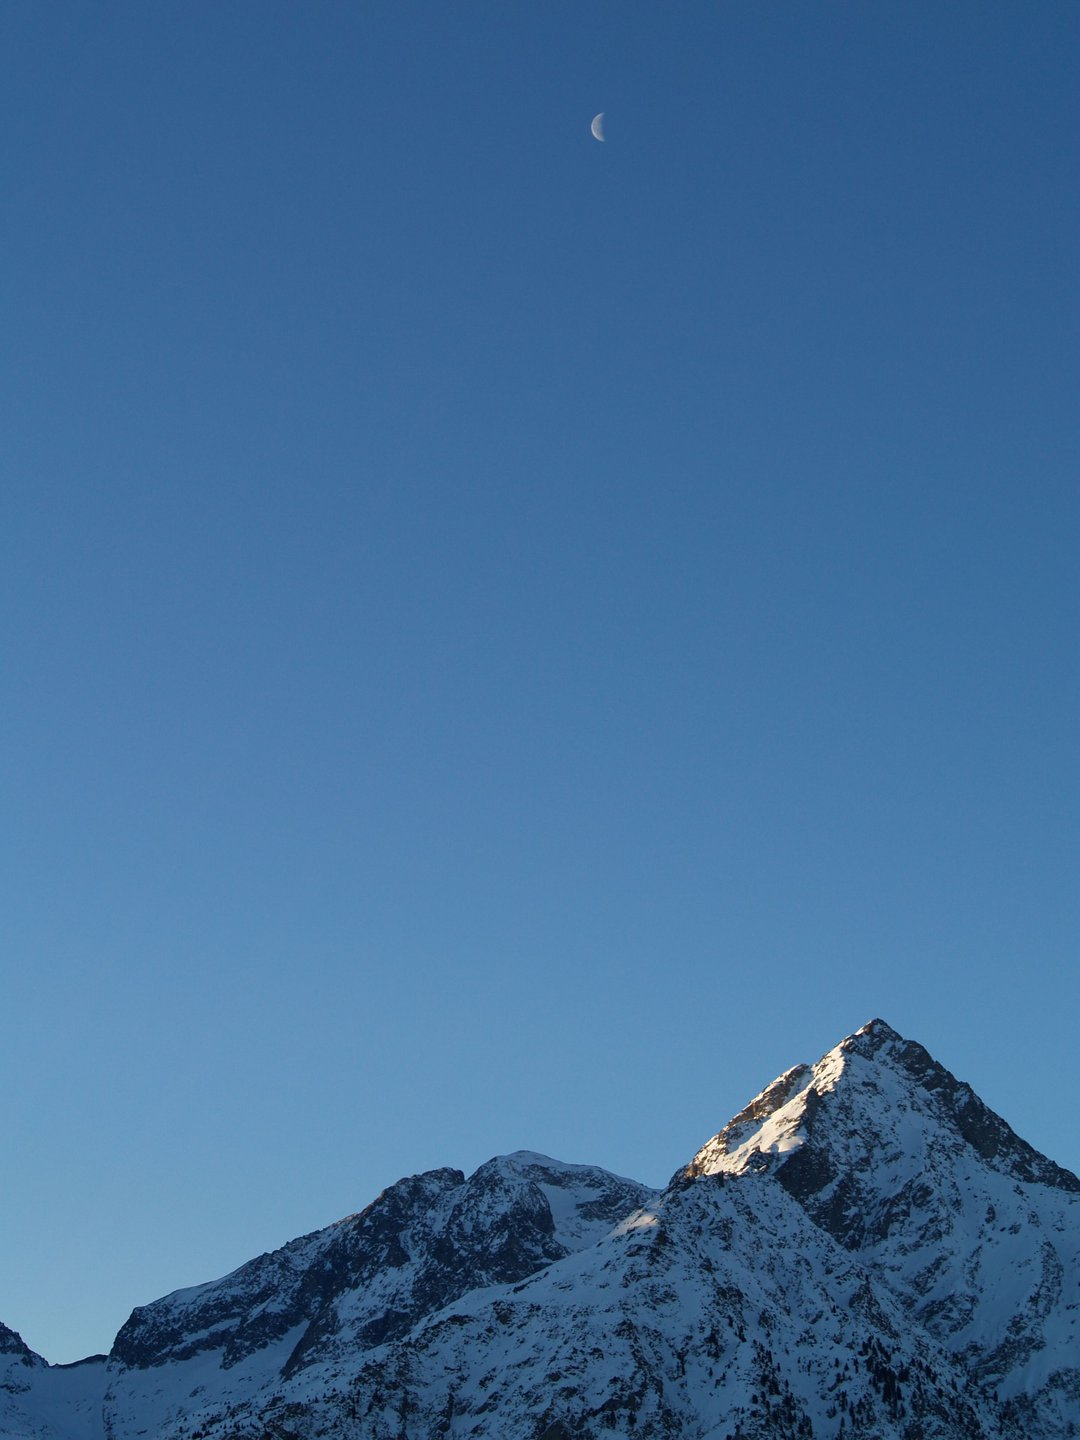 Les Deux Alpes and the Moon